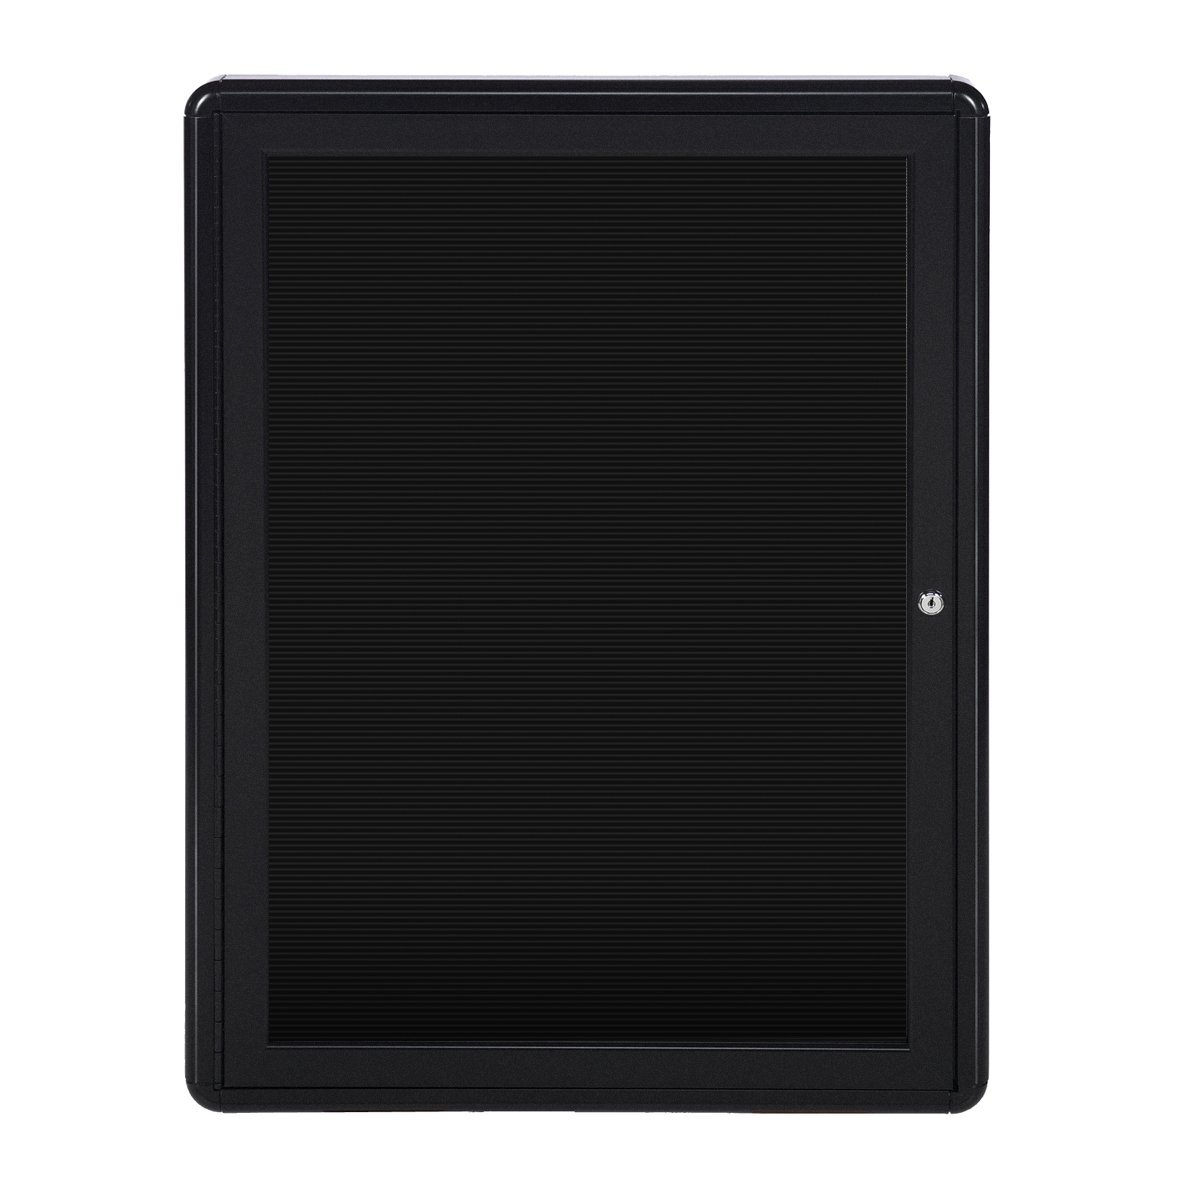 Ghent 34'' x 24'' 1-Door Ovation Letter Board, Black Frame (OVK1-BBK)